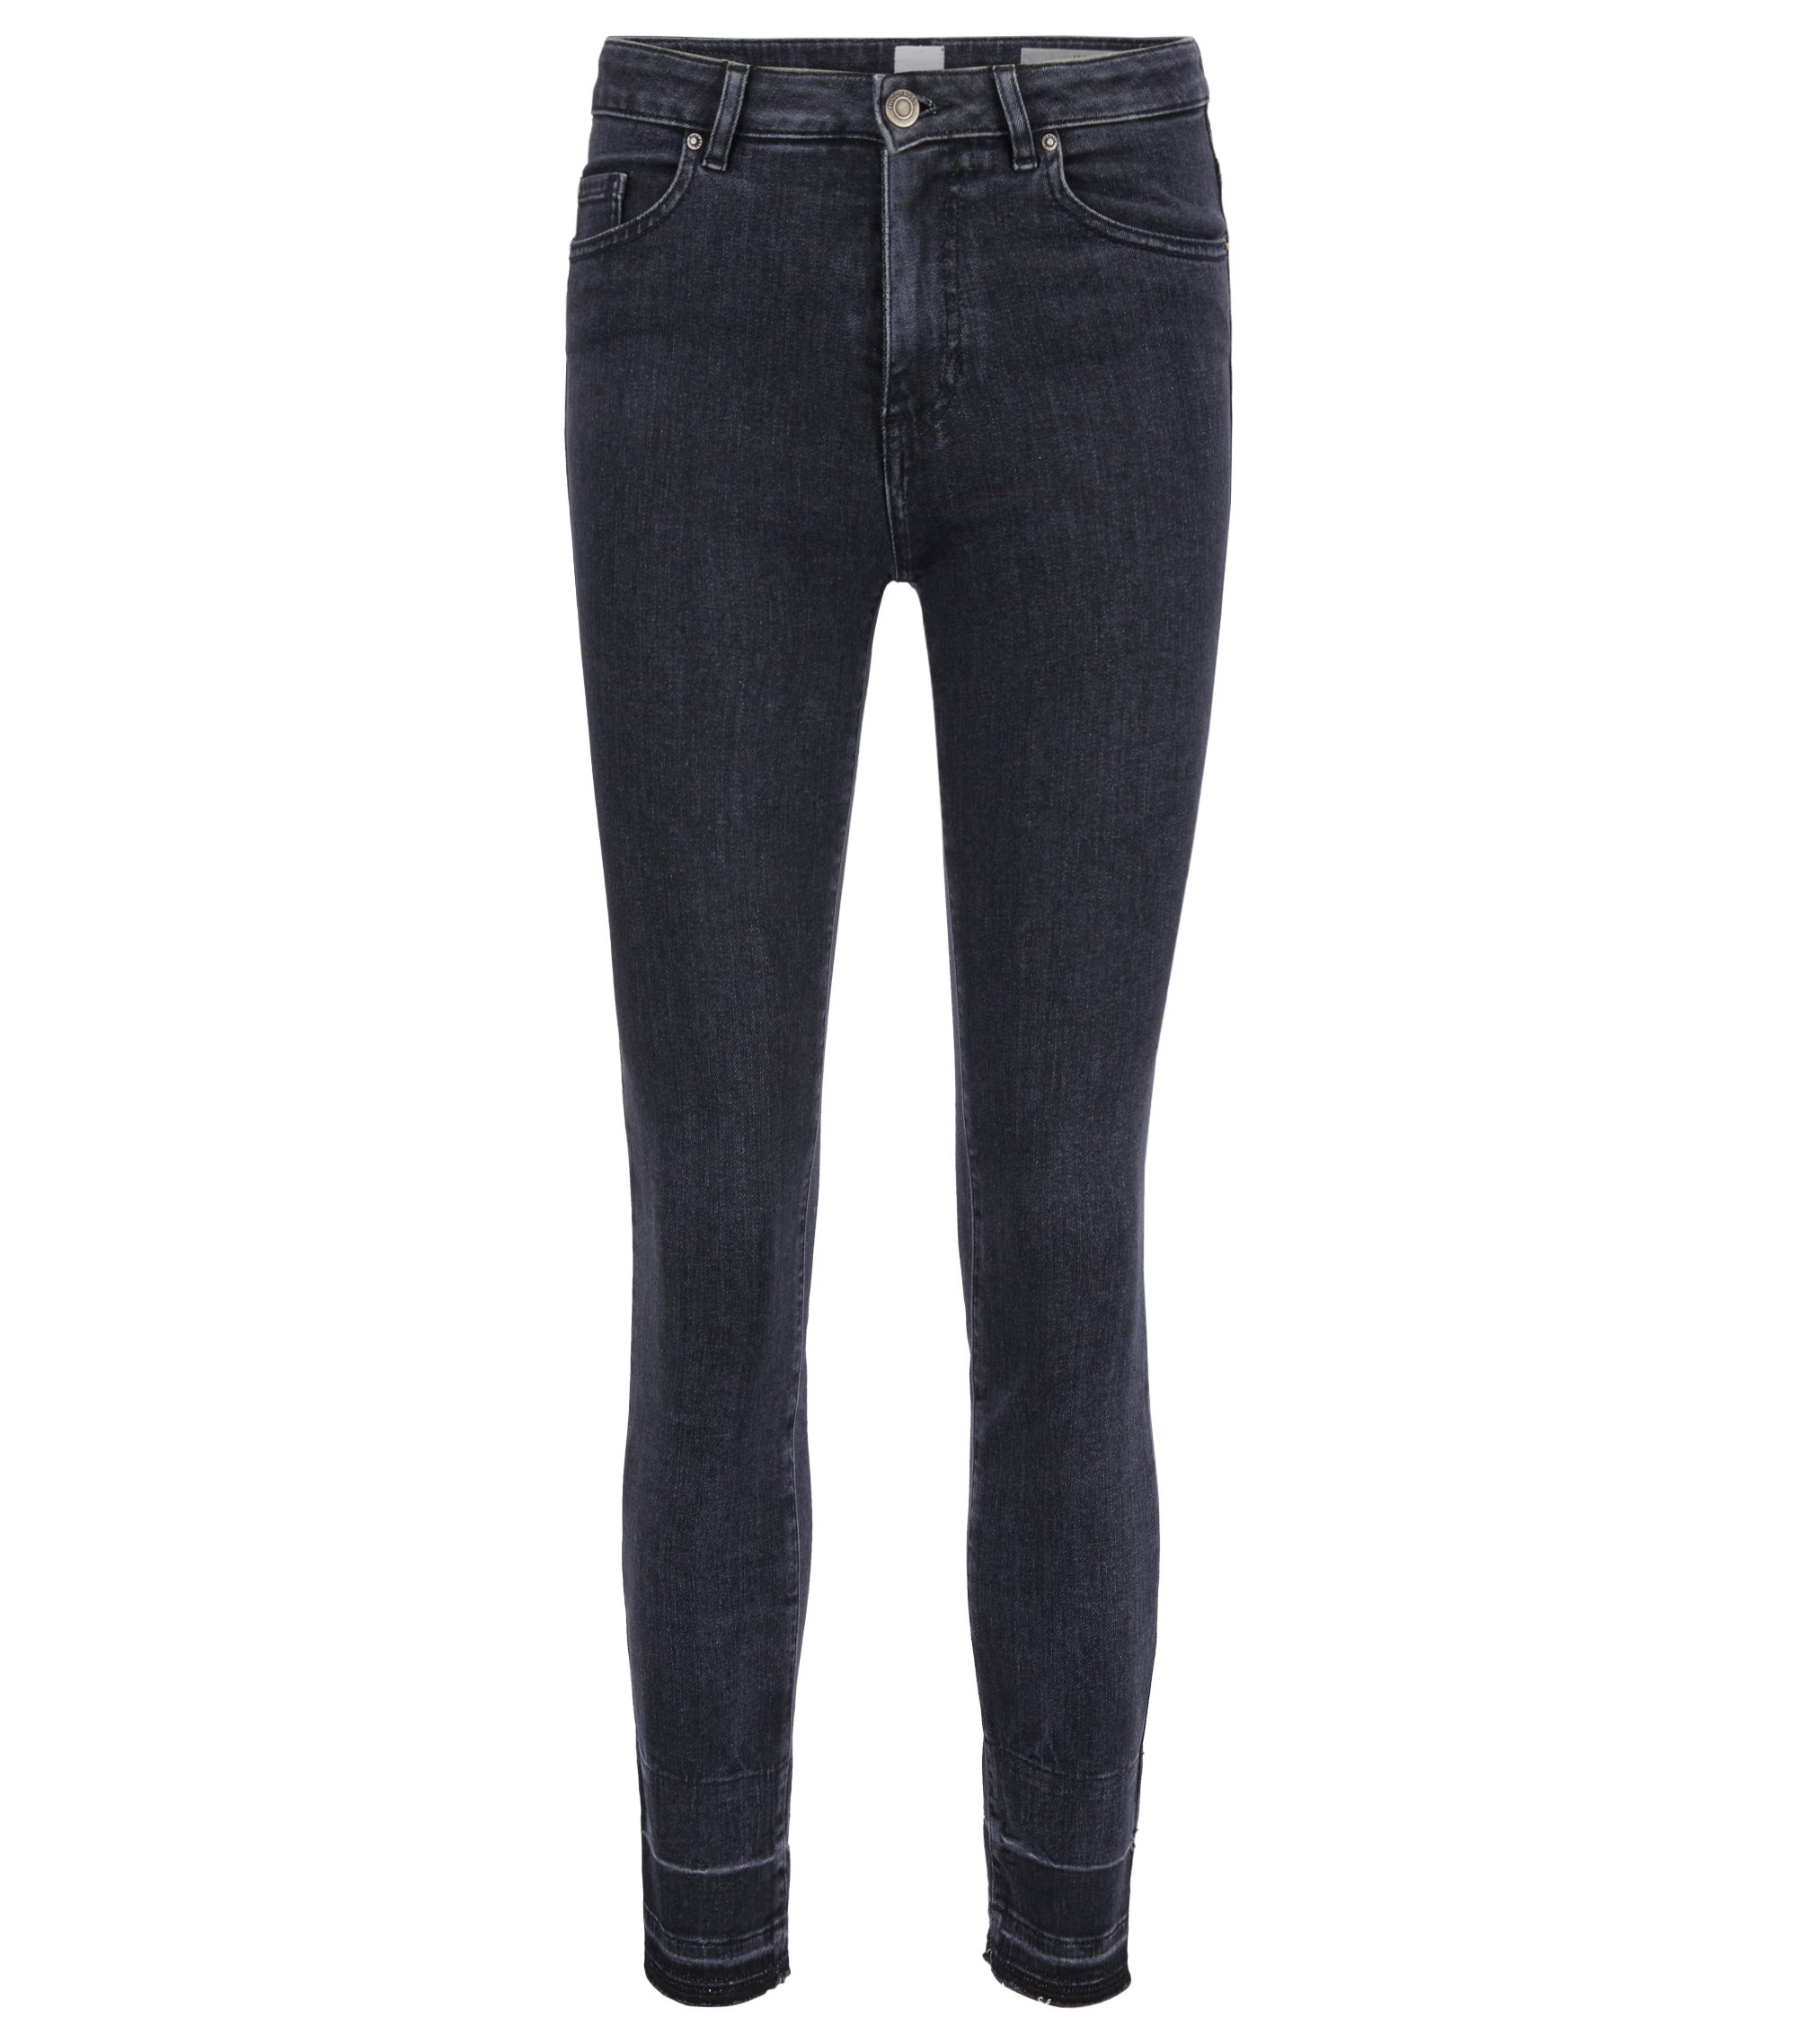 Skinny-Fit Jeans aus Powerstretch-Denim in Cropped-Länge, Dunkelgrau